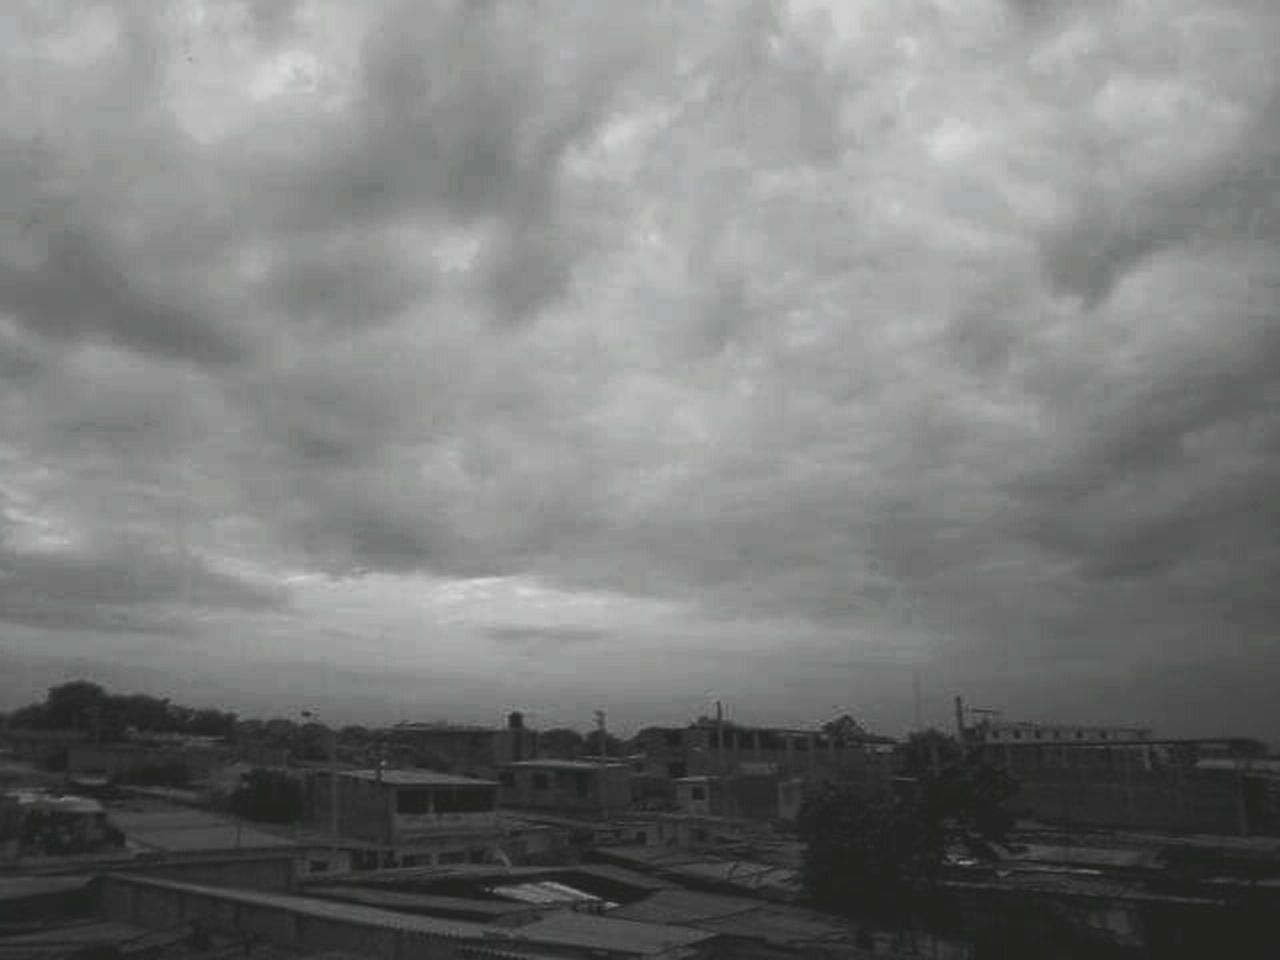 cloud - sky, building exterior, architecture, sky, built structure, weather, storm cloud, outdoors, city, nature, no people, day, tree, cityscape, thunderstorm